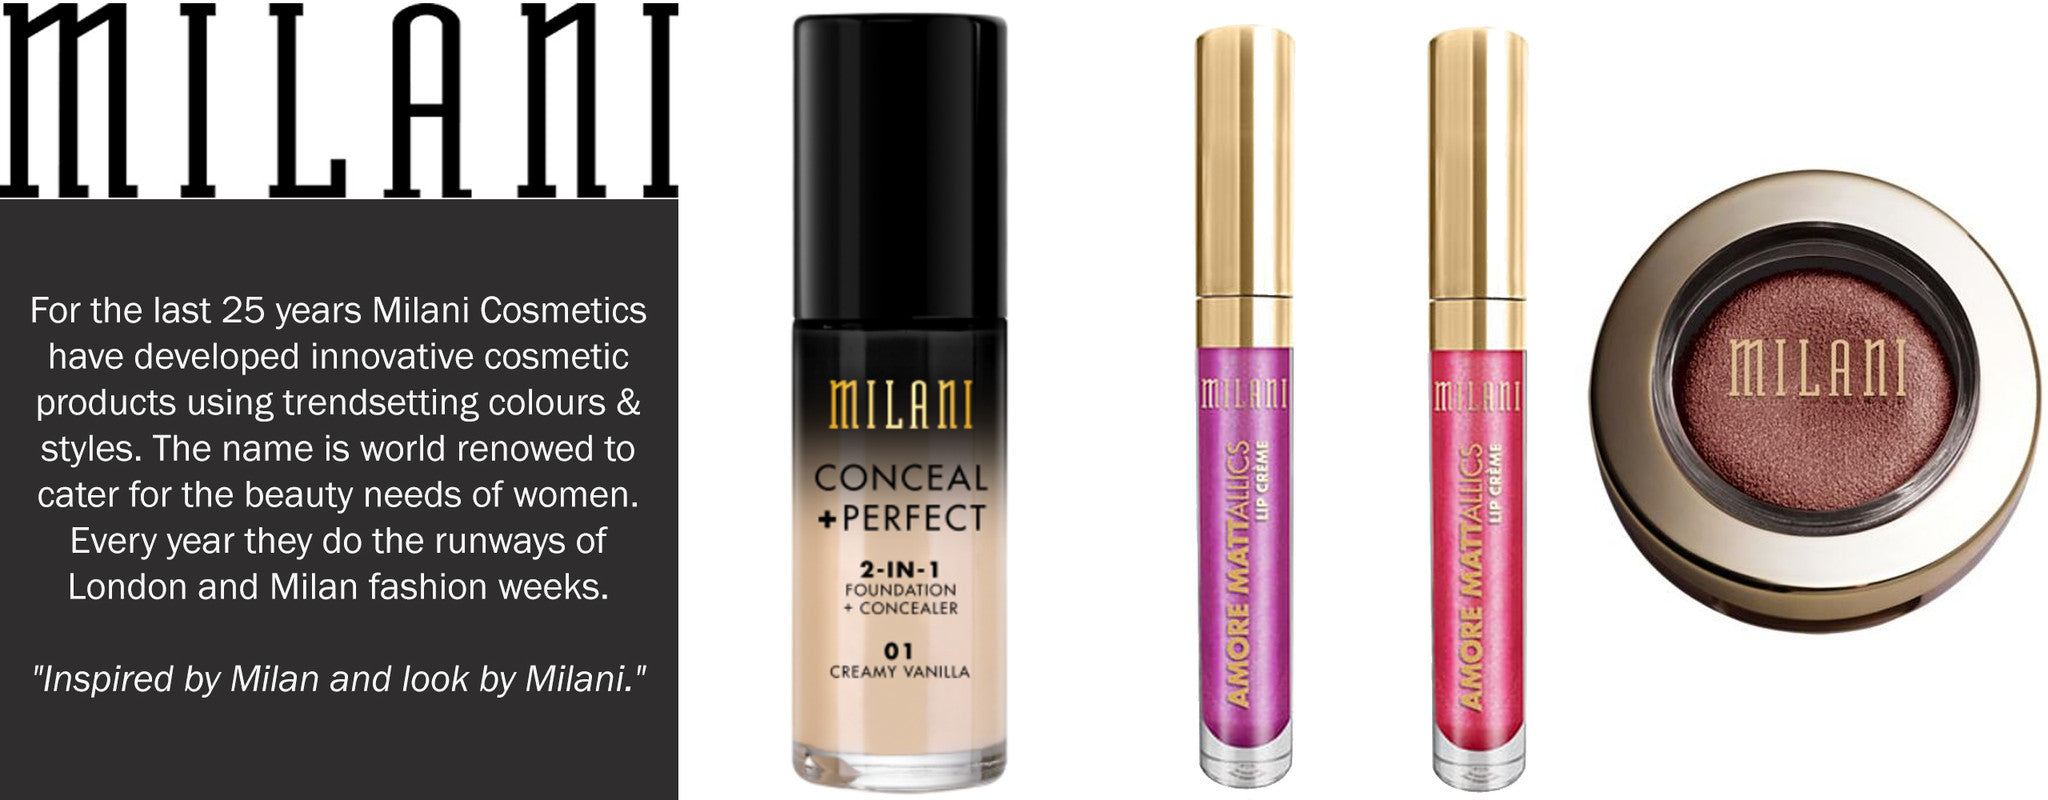 Milani Collection Image